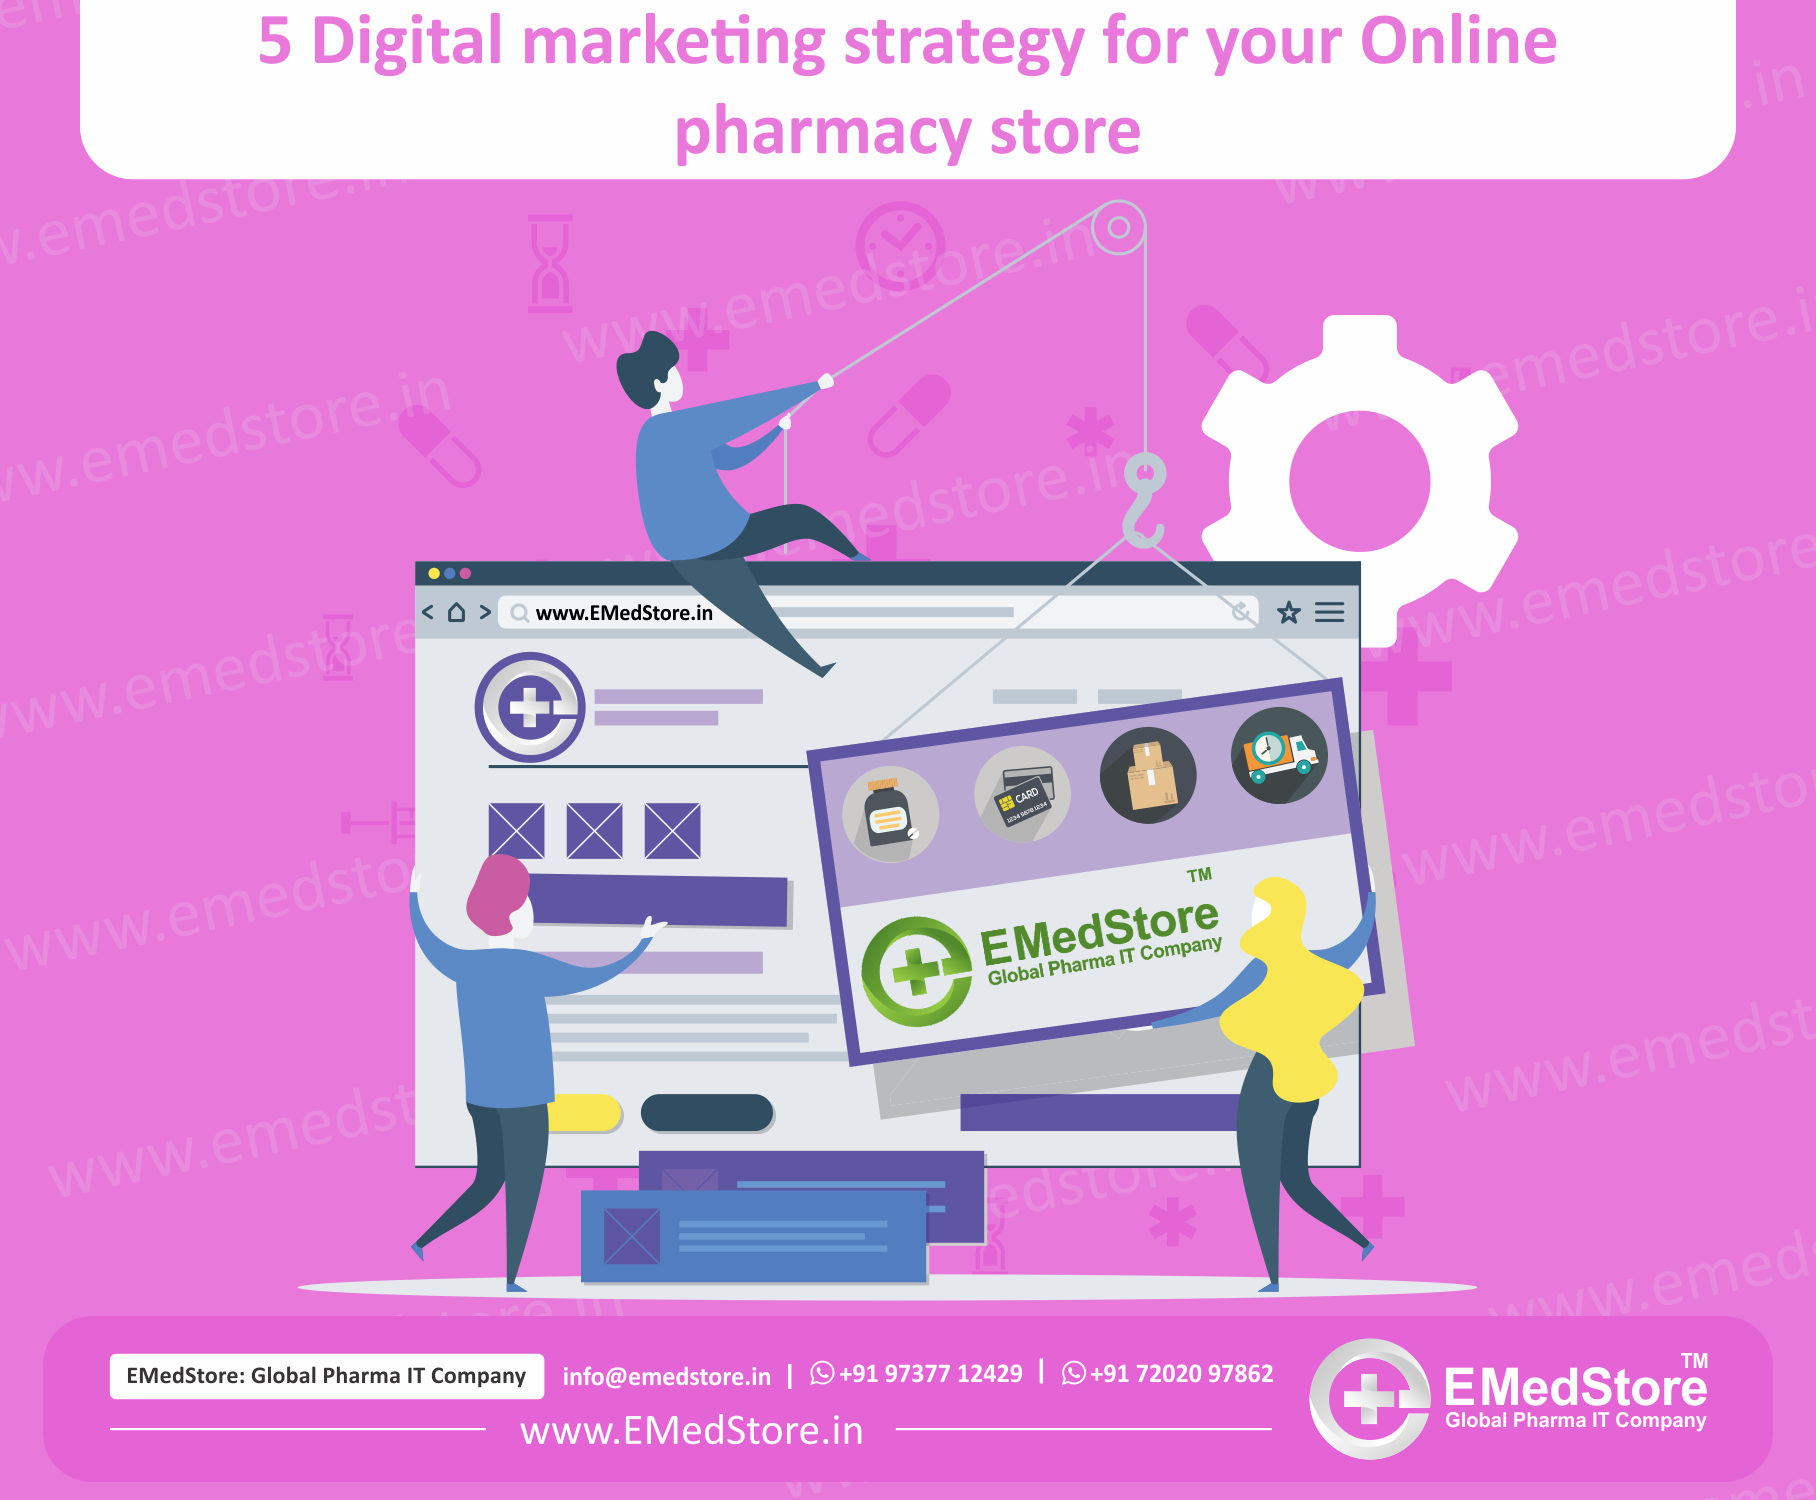 5 Digital marketing strategy for your Online pharmacy store